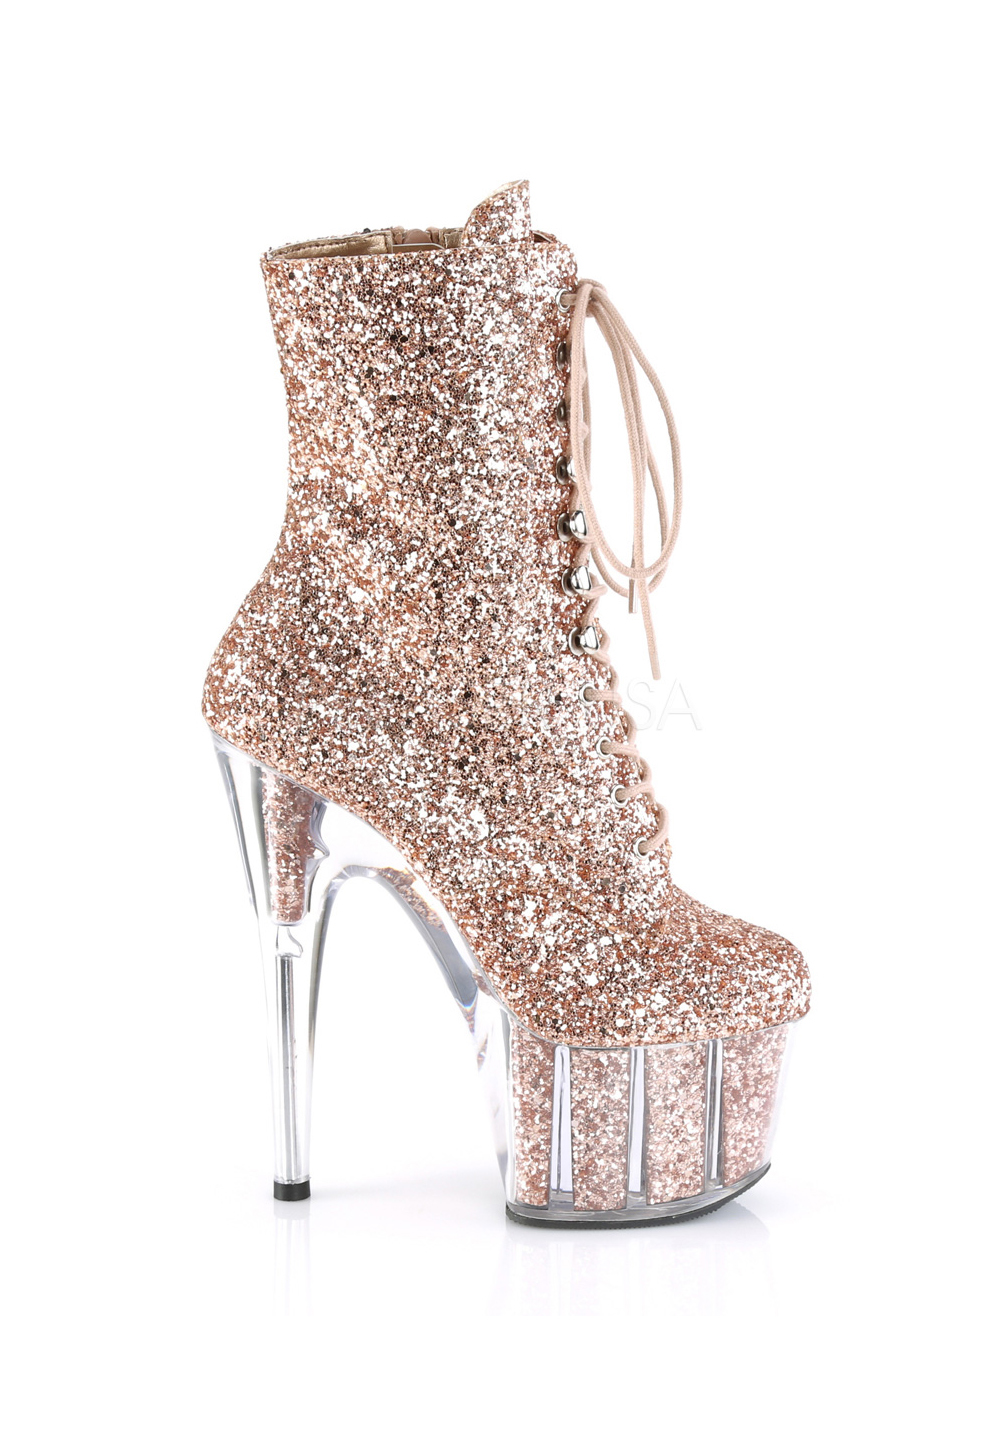 Women/'s 6 1//2 Inch Heel Glitter Lace-Up Ankle Boot With Glitter-Filled Platform